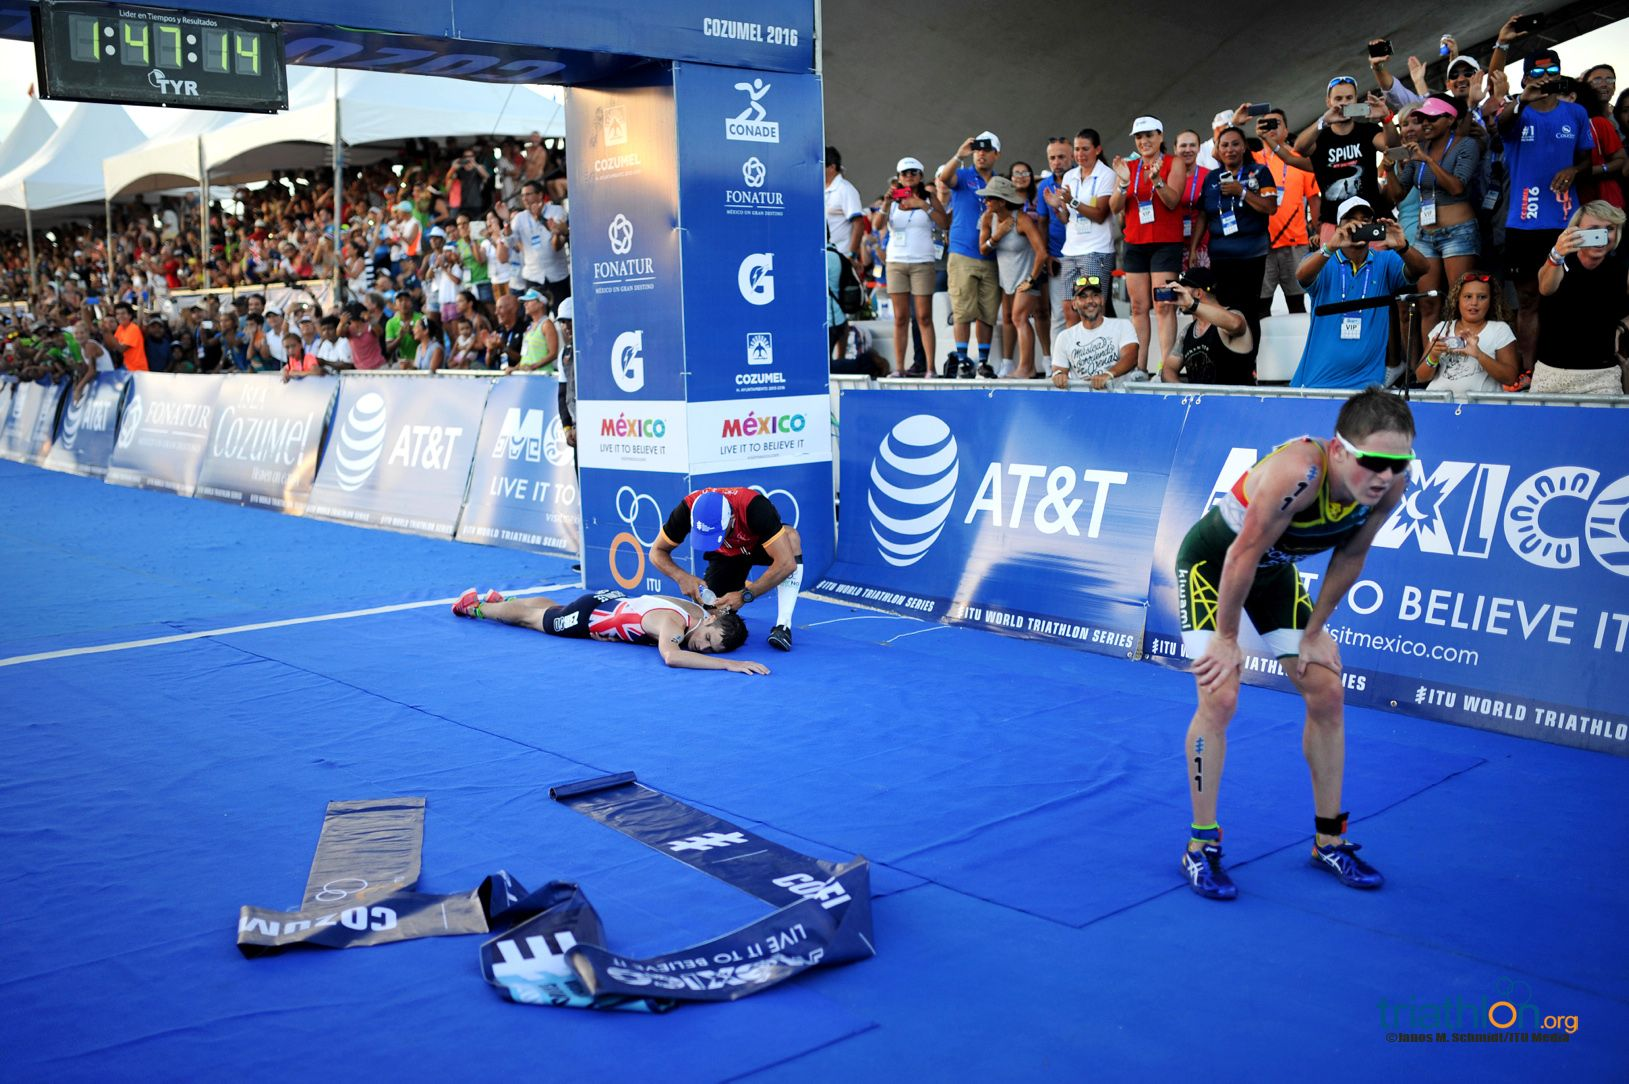 johnny-brownlee-flat-out-cozumel